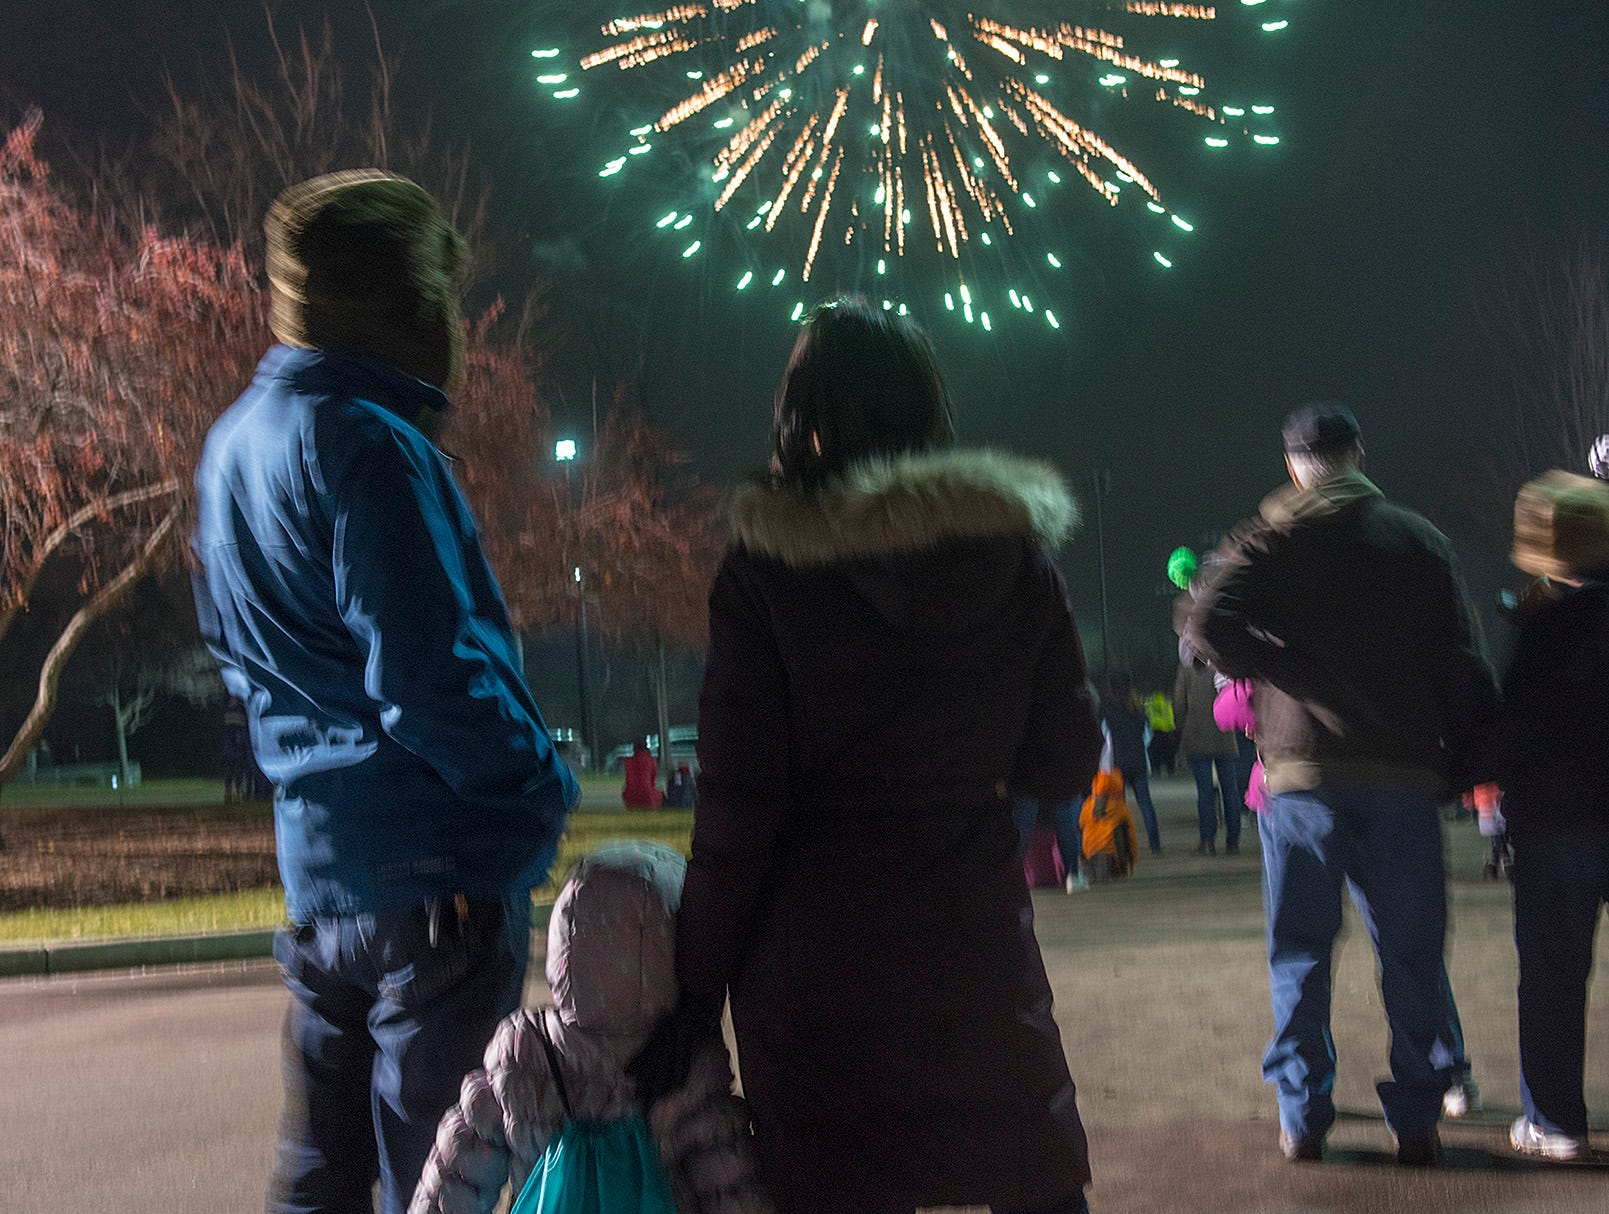 Nandish Doshi, Ranjana Doshi, and two year old daughter Jasmine watch the fireworks show.